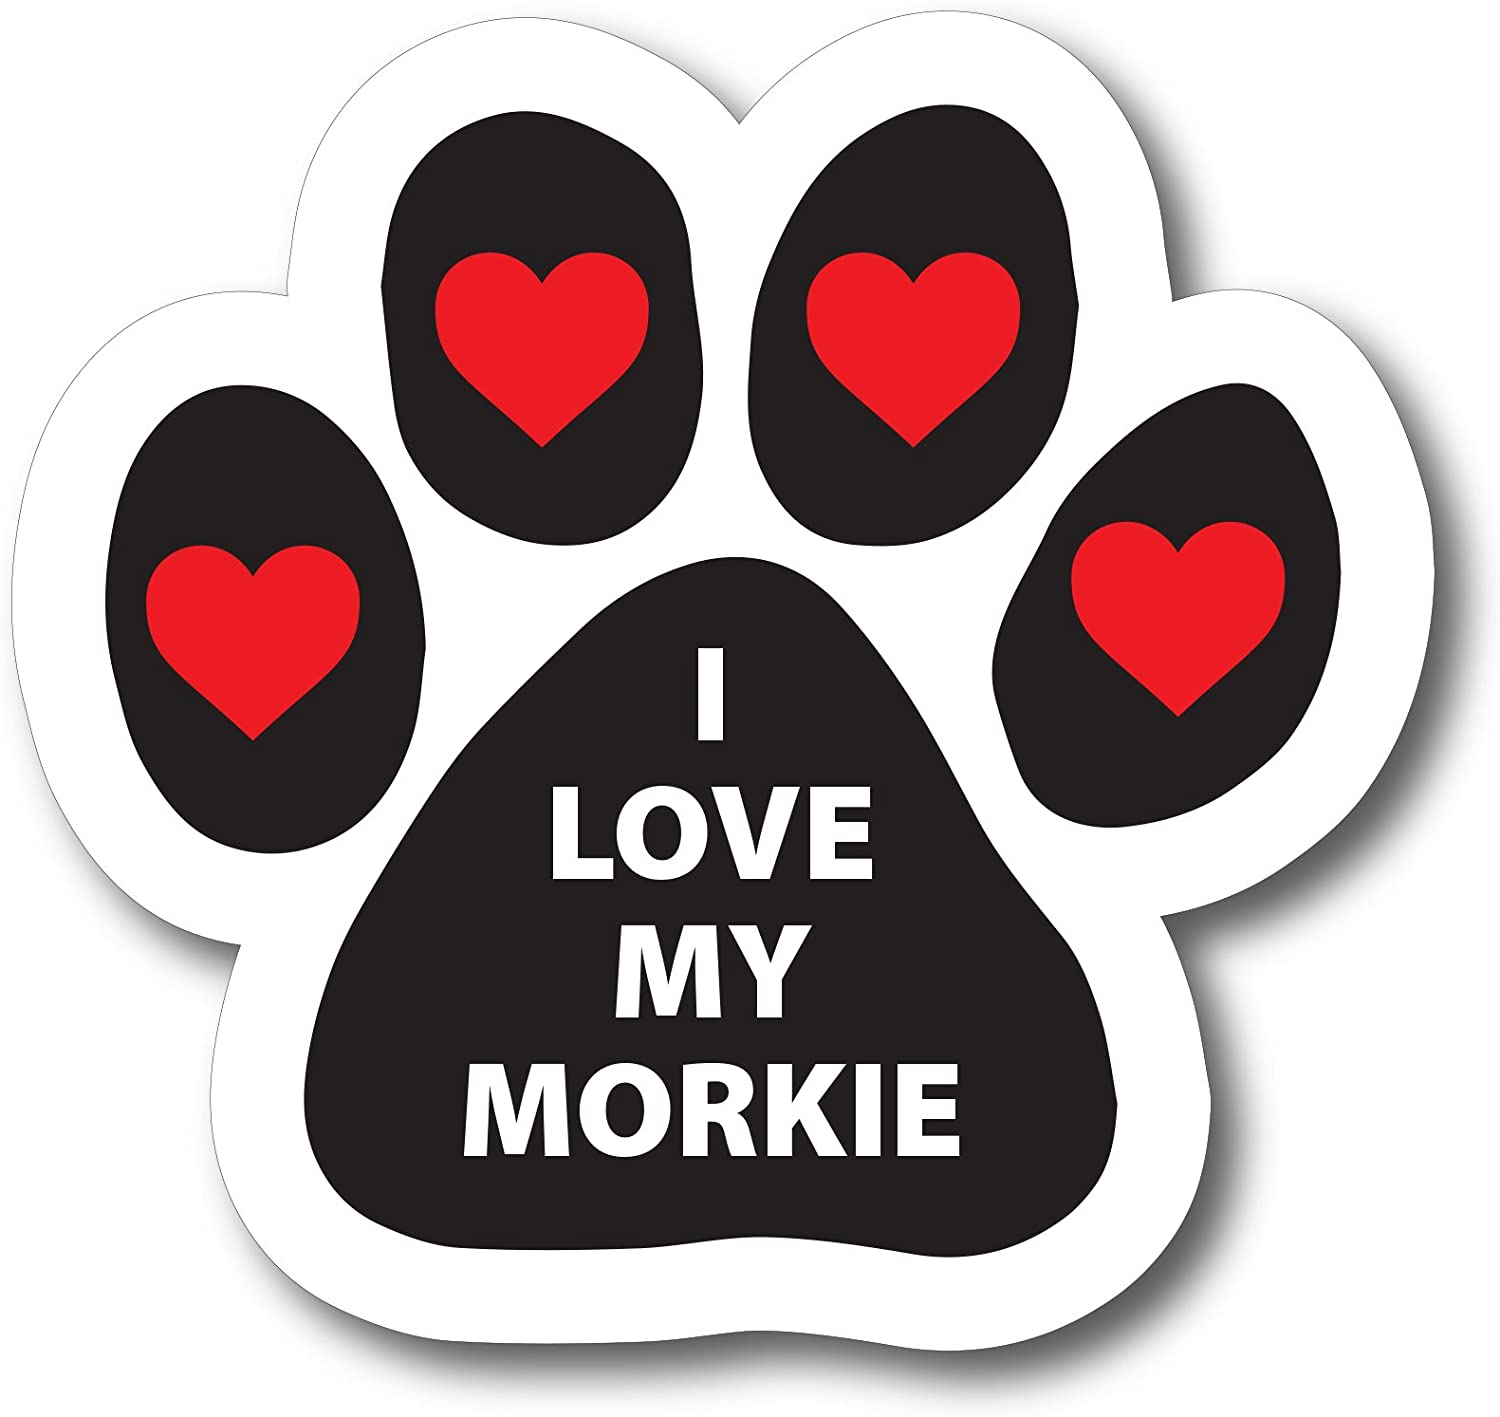 Magnet Me Up I Love My Morkie Pawprint Car Magnet Paw Print Auto Truck Decal Magnet